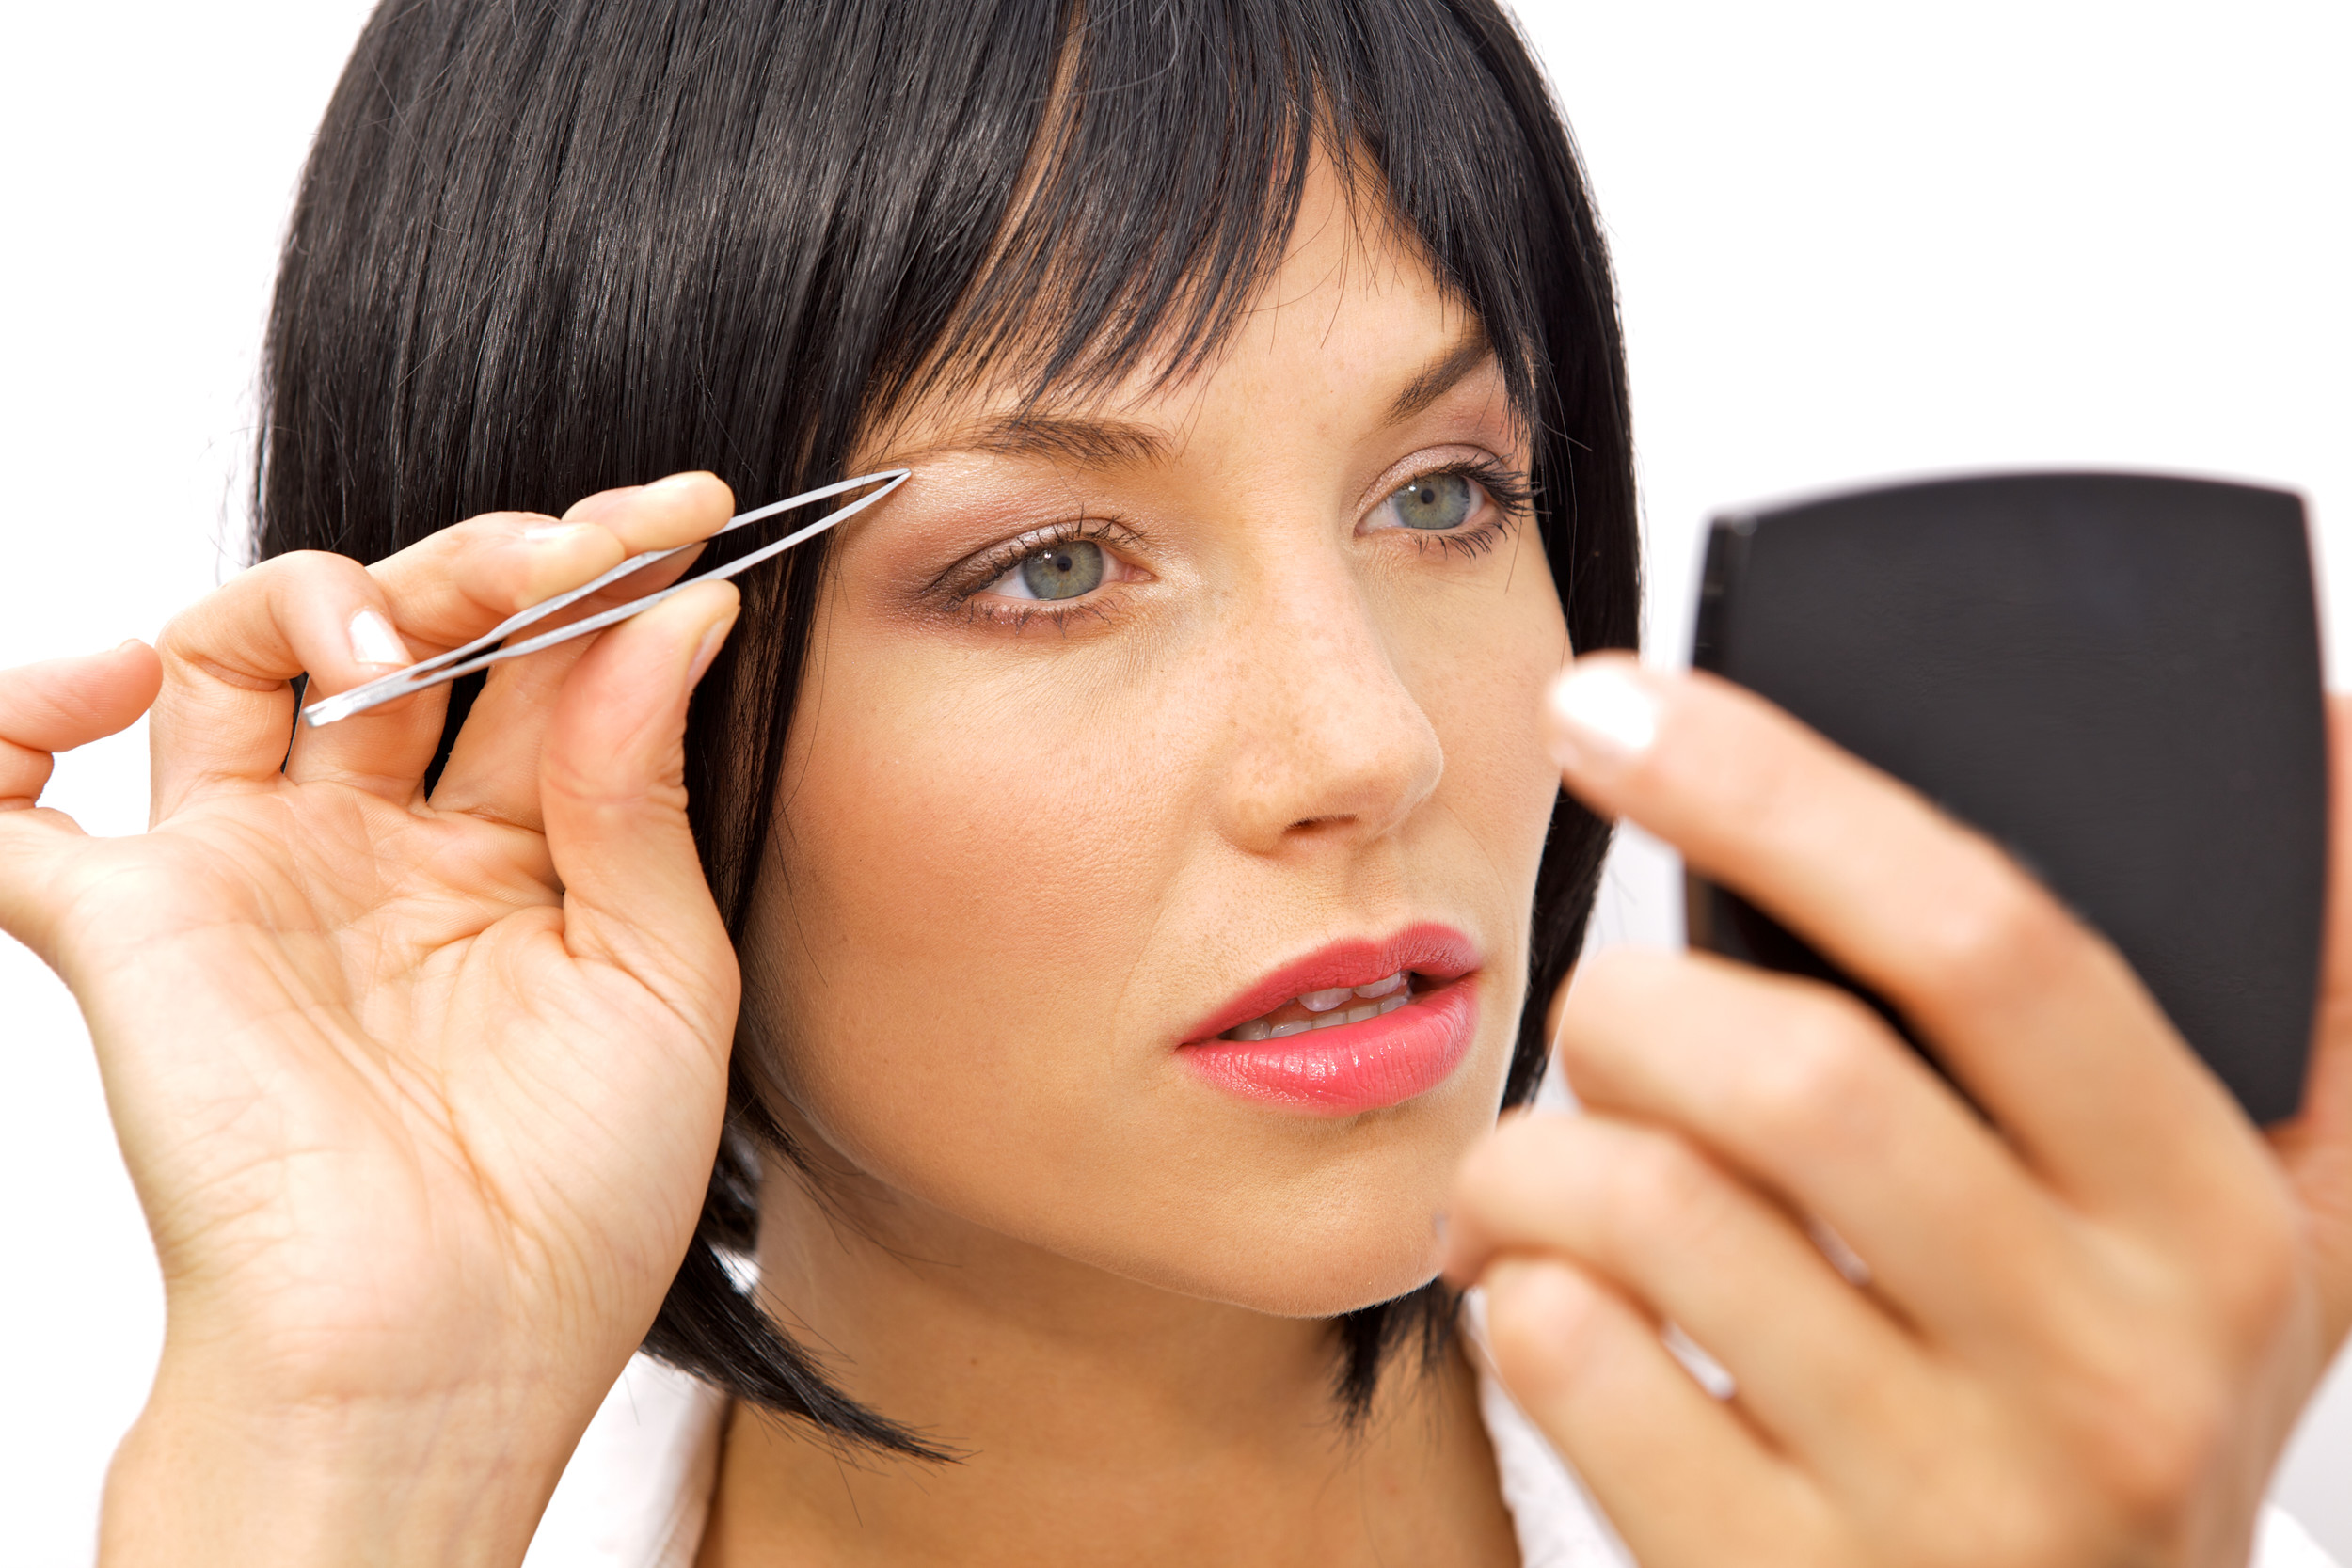 A Beautiful Woman Tweezing her eyebrows with tweezers in her hand